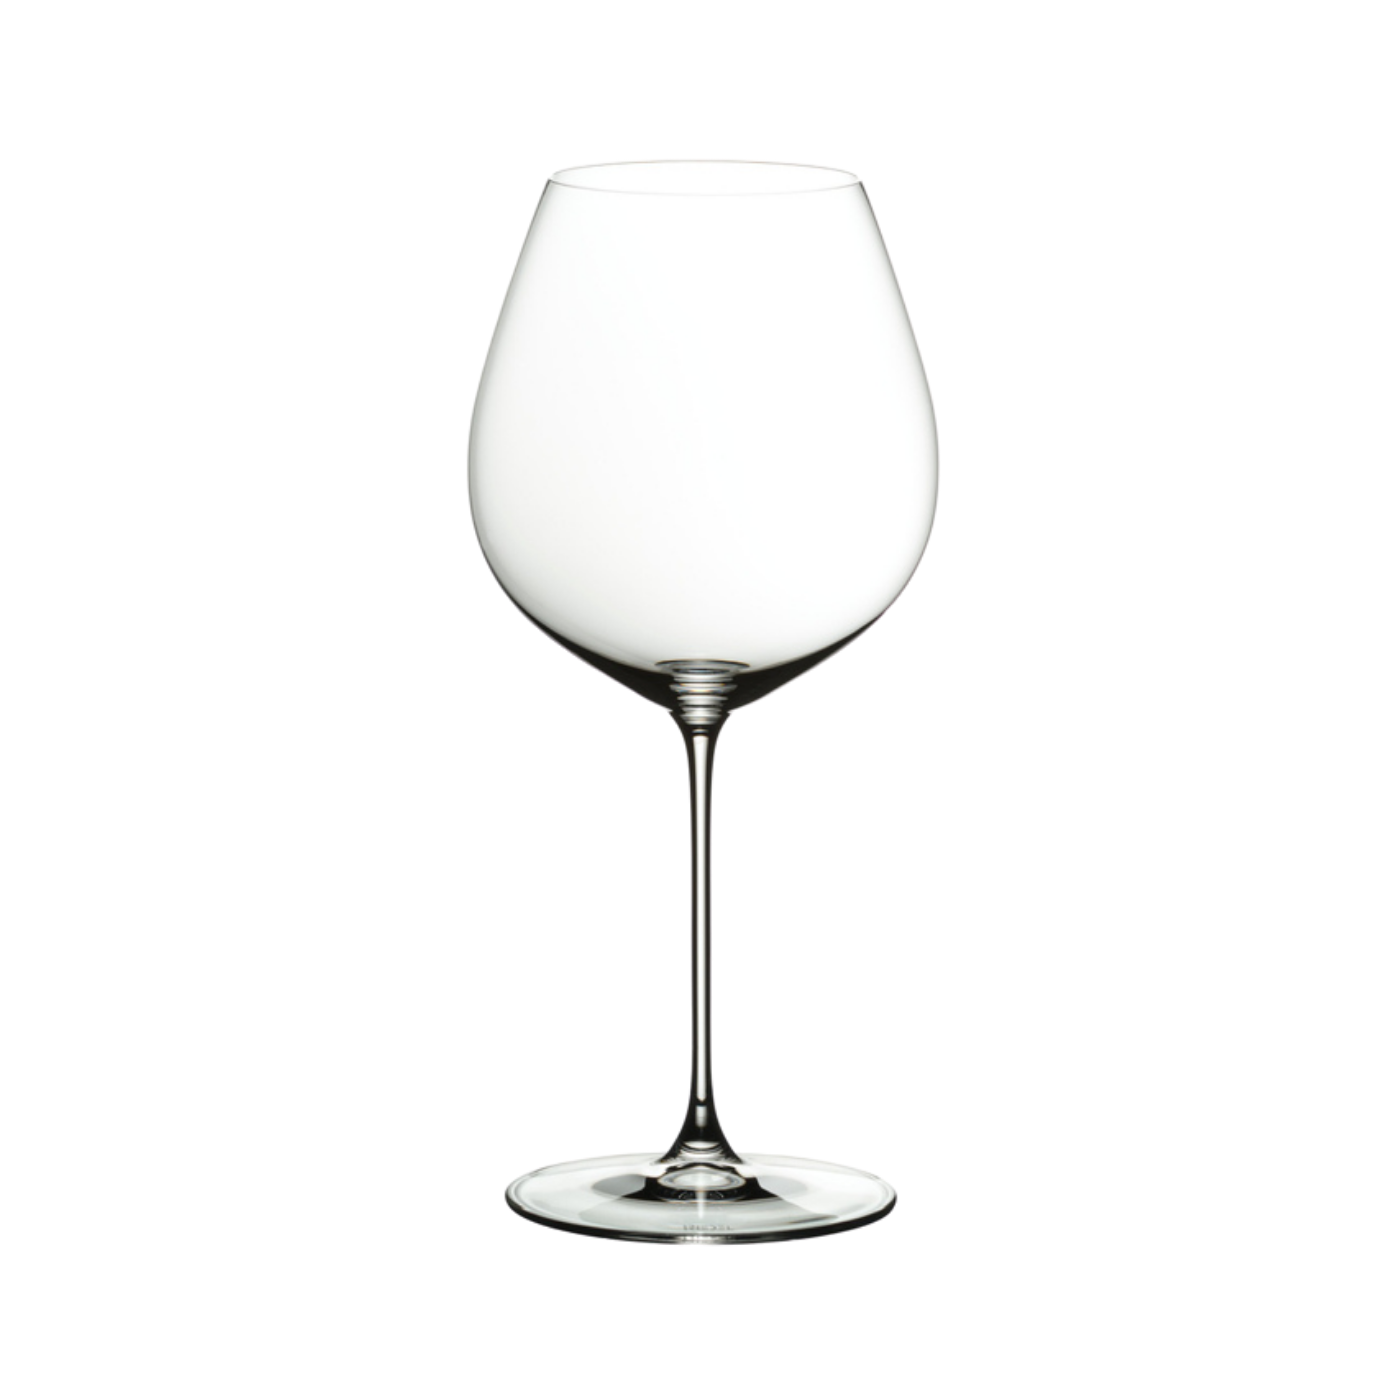 Riedel Veritas Old World Pinot Noir Glasses (set of 2)